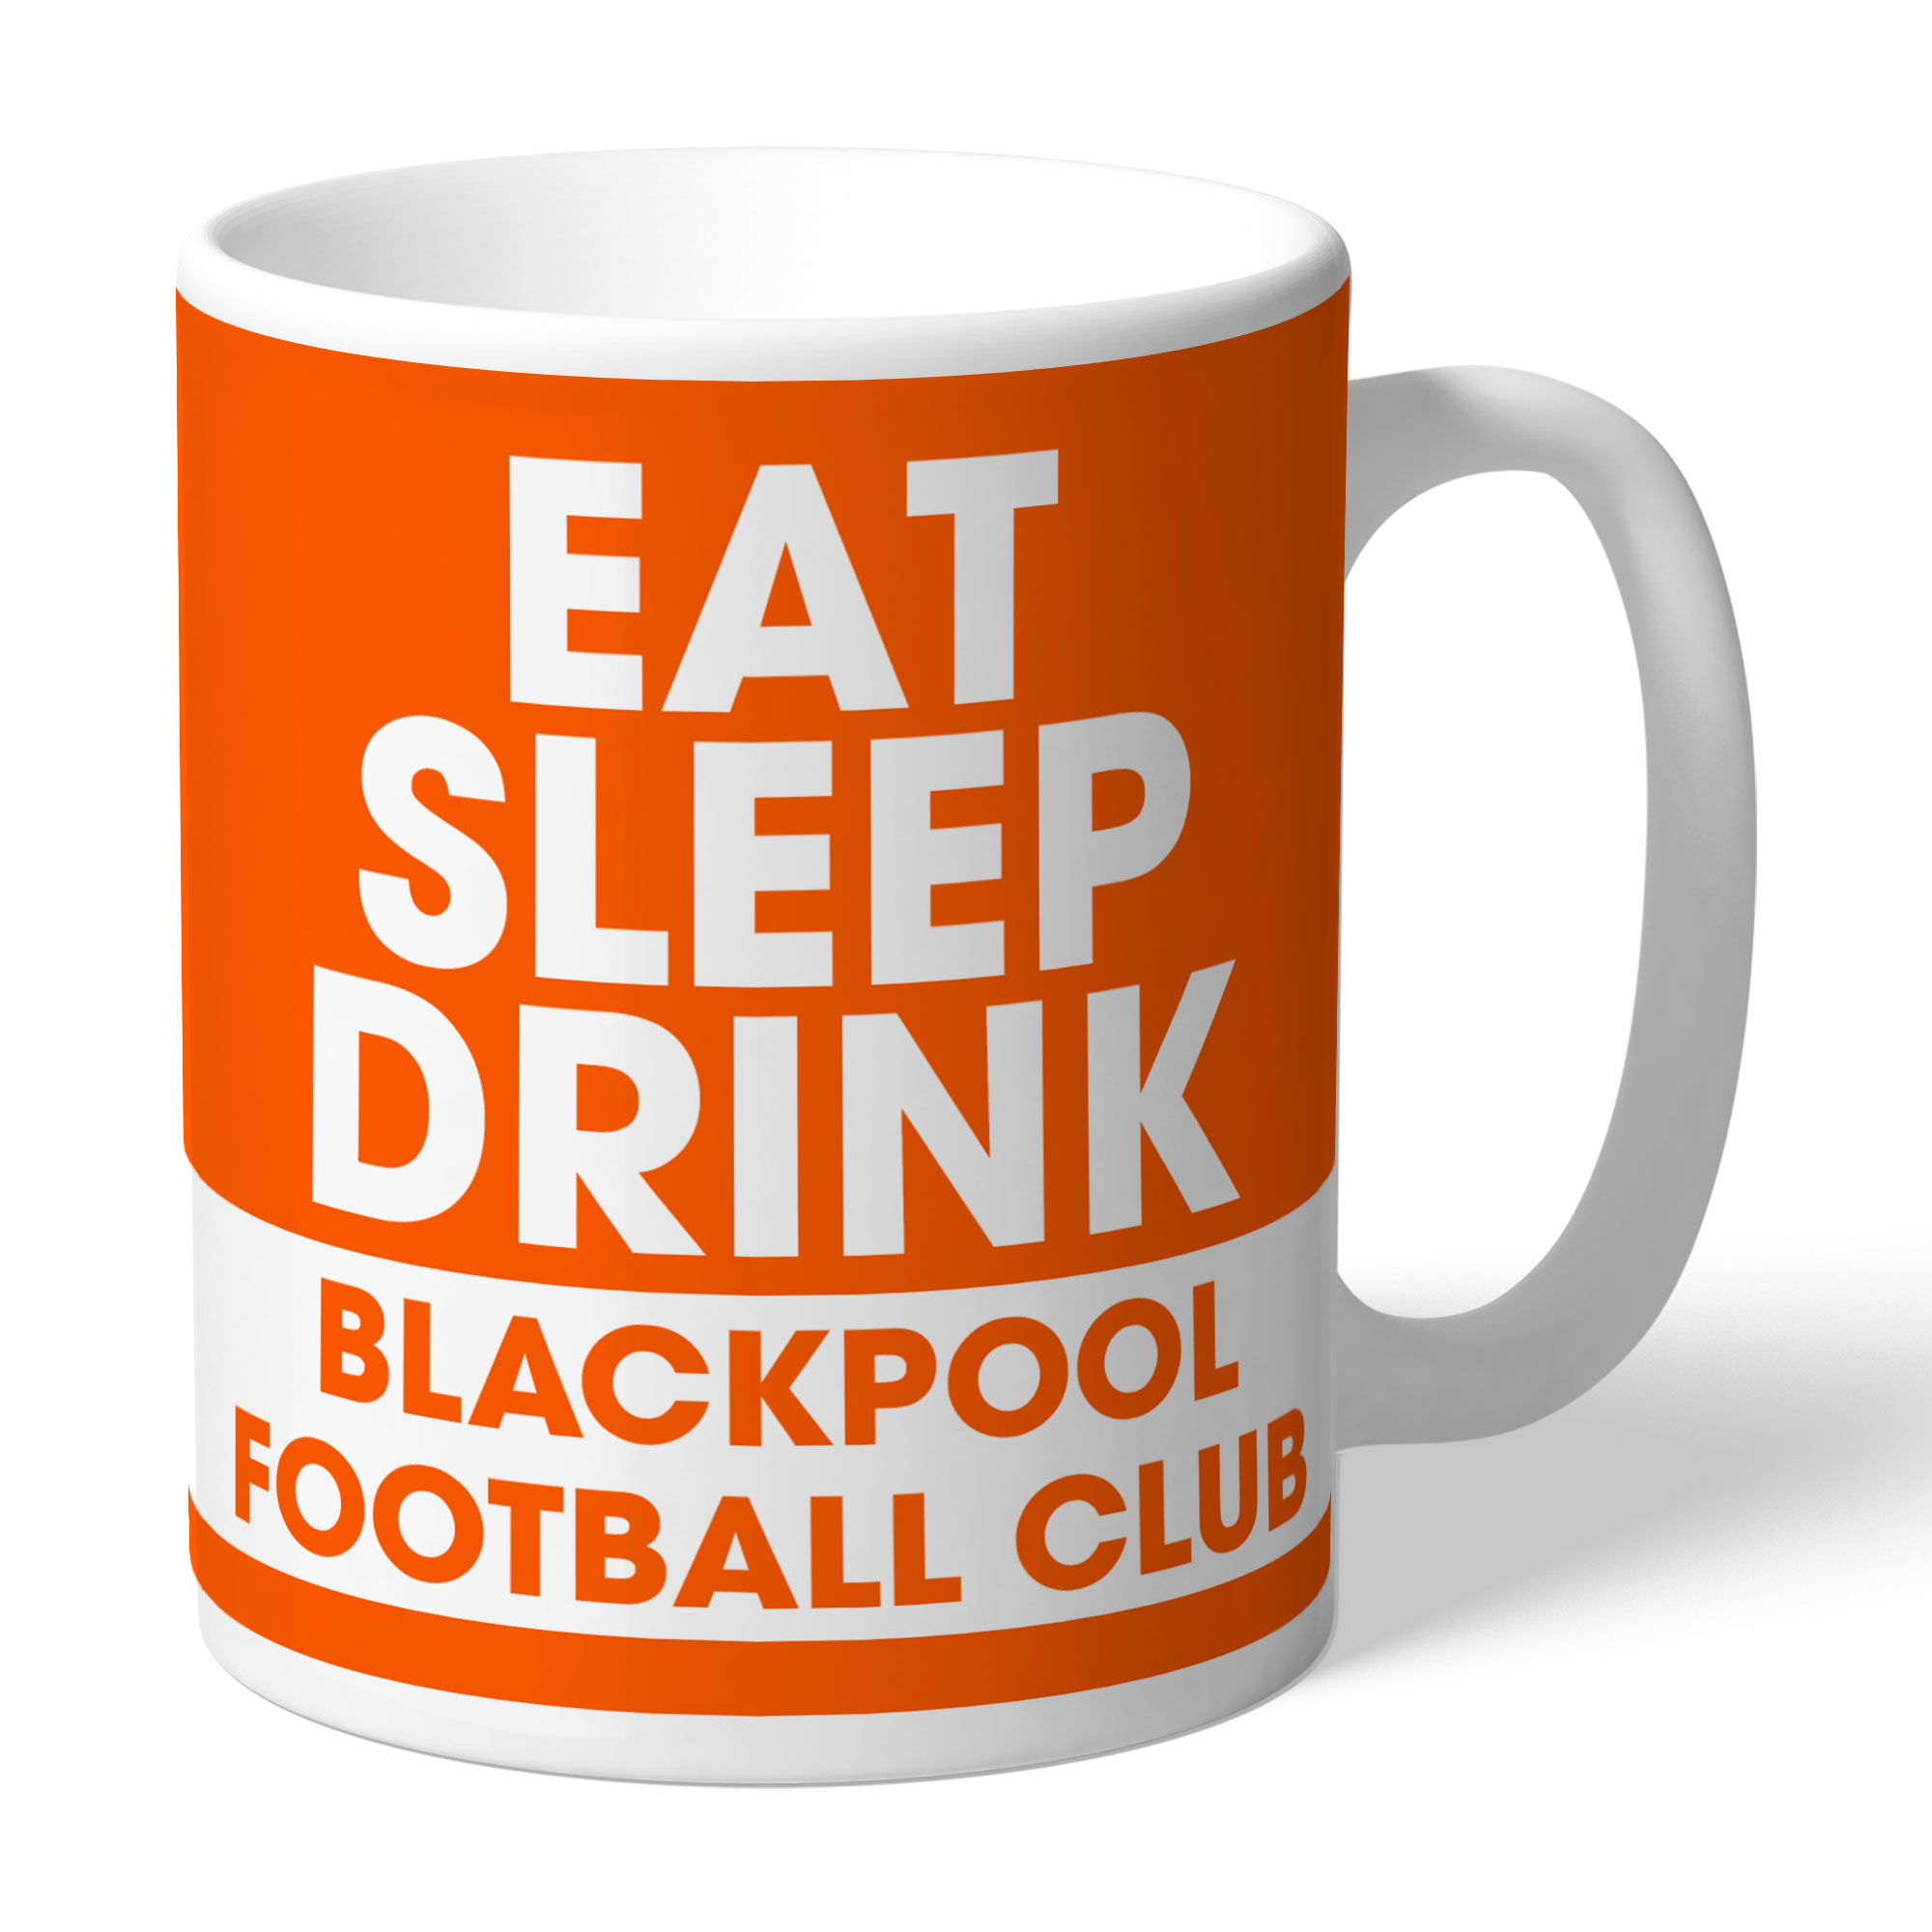 Blackpool FC Eat Sleep Drink Mug